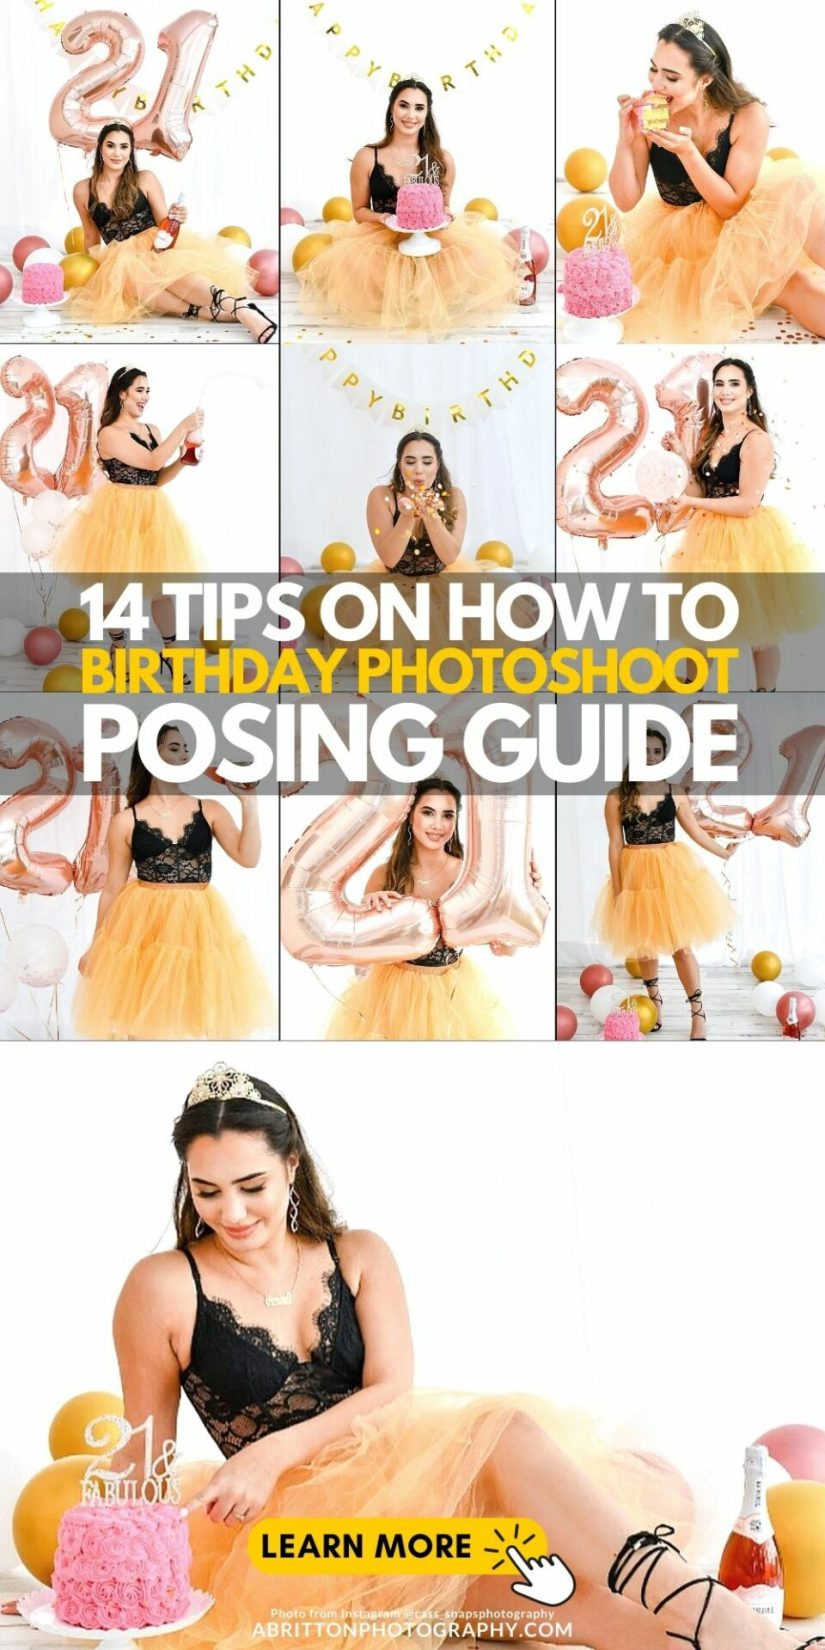 Simple Guide How to Photoshoot Your Birthday Ideas and Poses